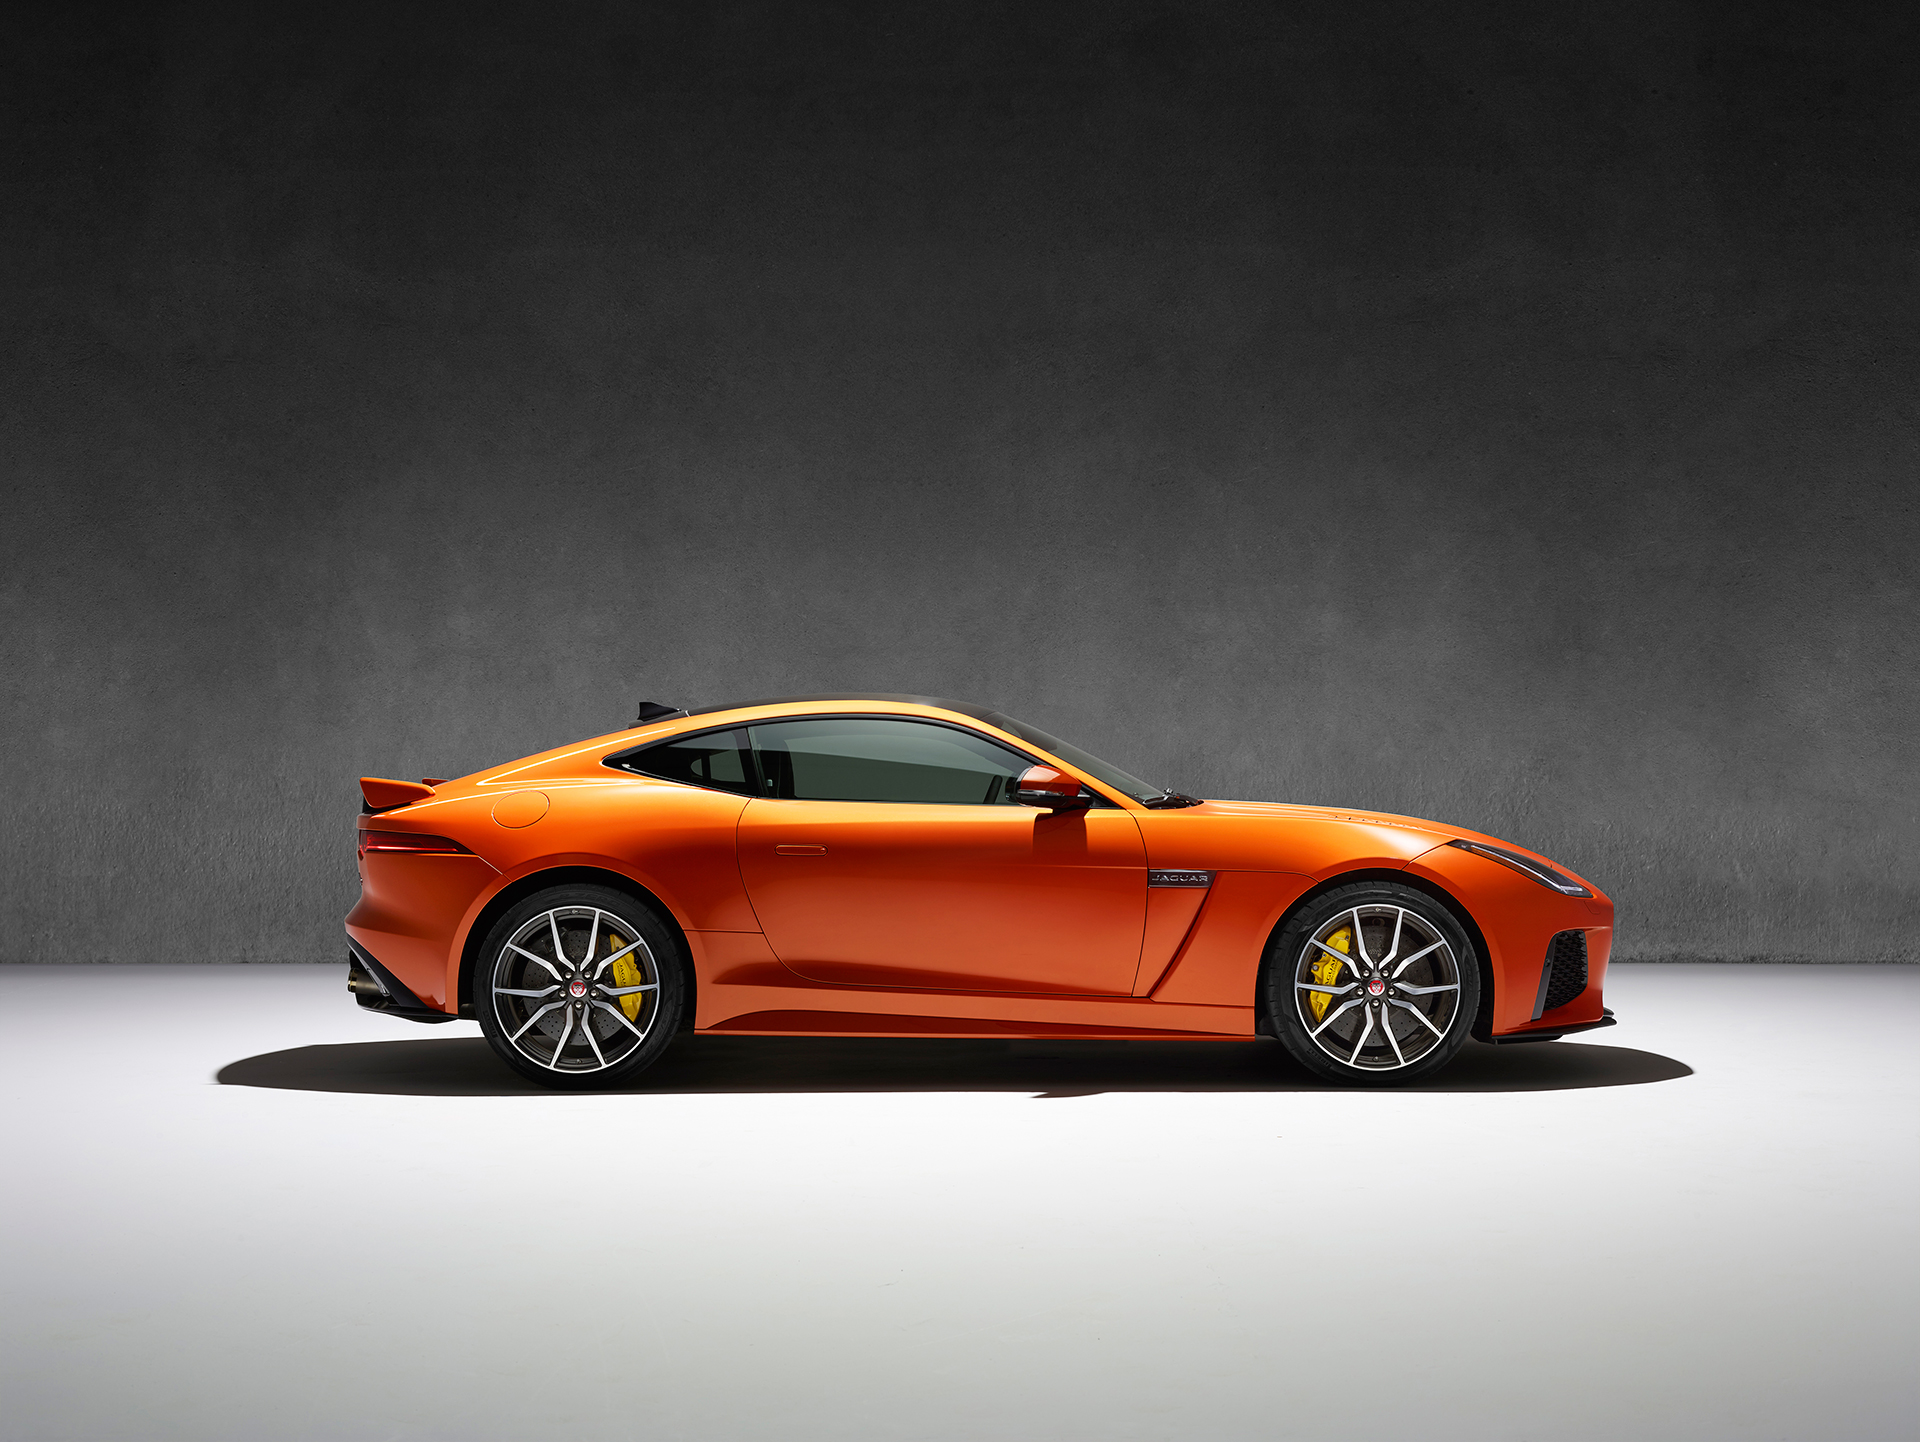 Jaguar F-TYPE SVR - 2016 - profil / side-face